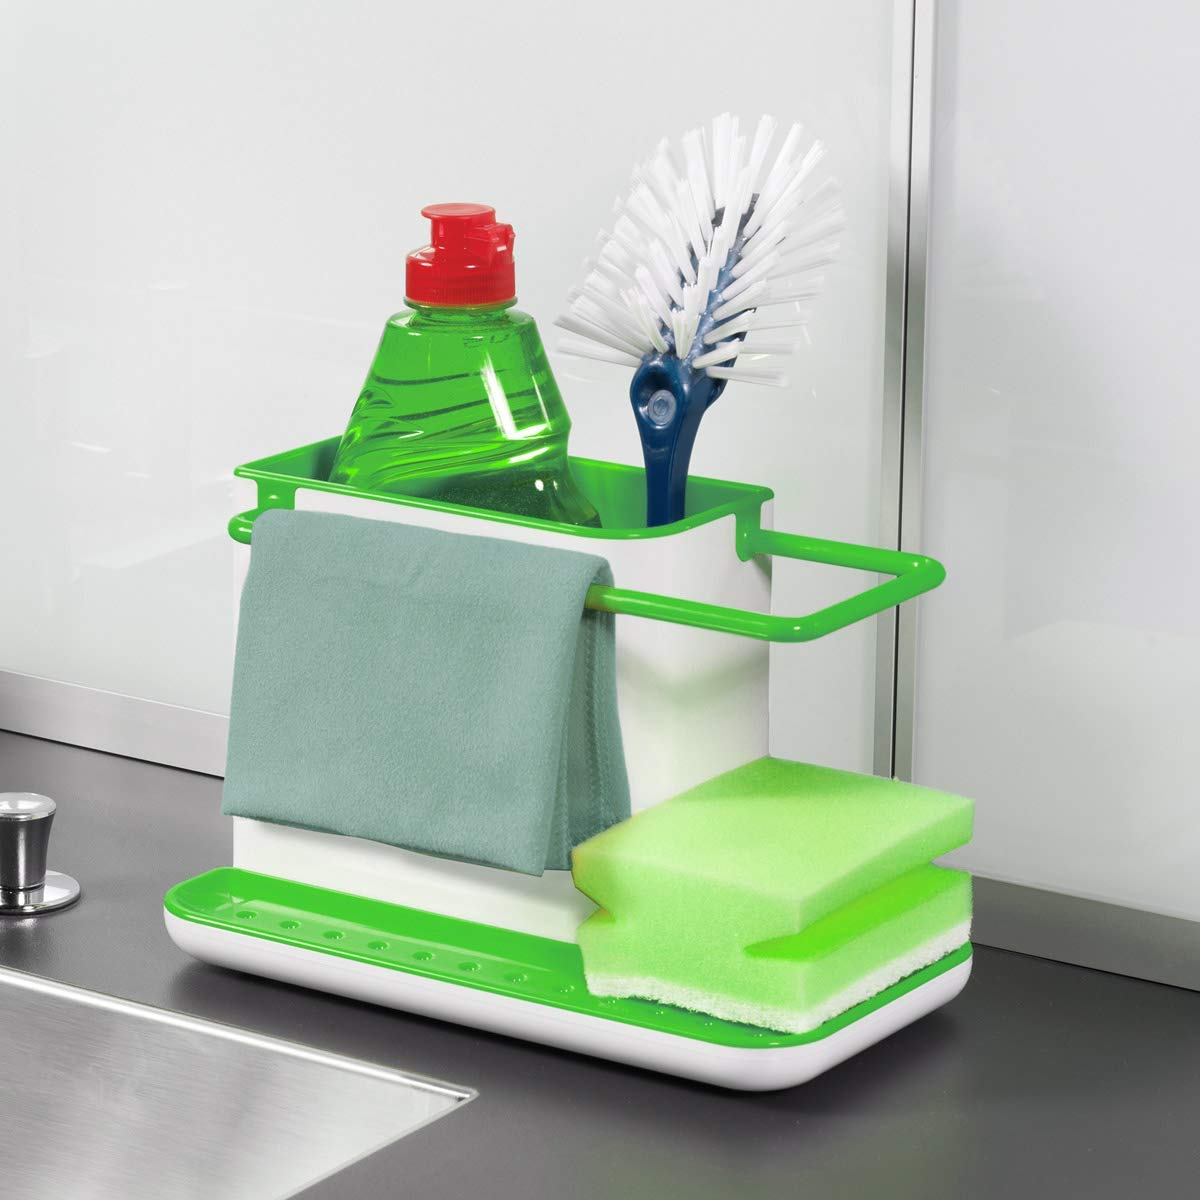 Amigozz 3 In 1 Stand For Kitchen Sink Standard Size Multicolour